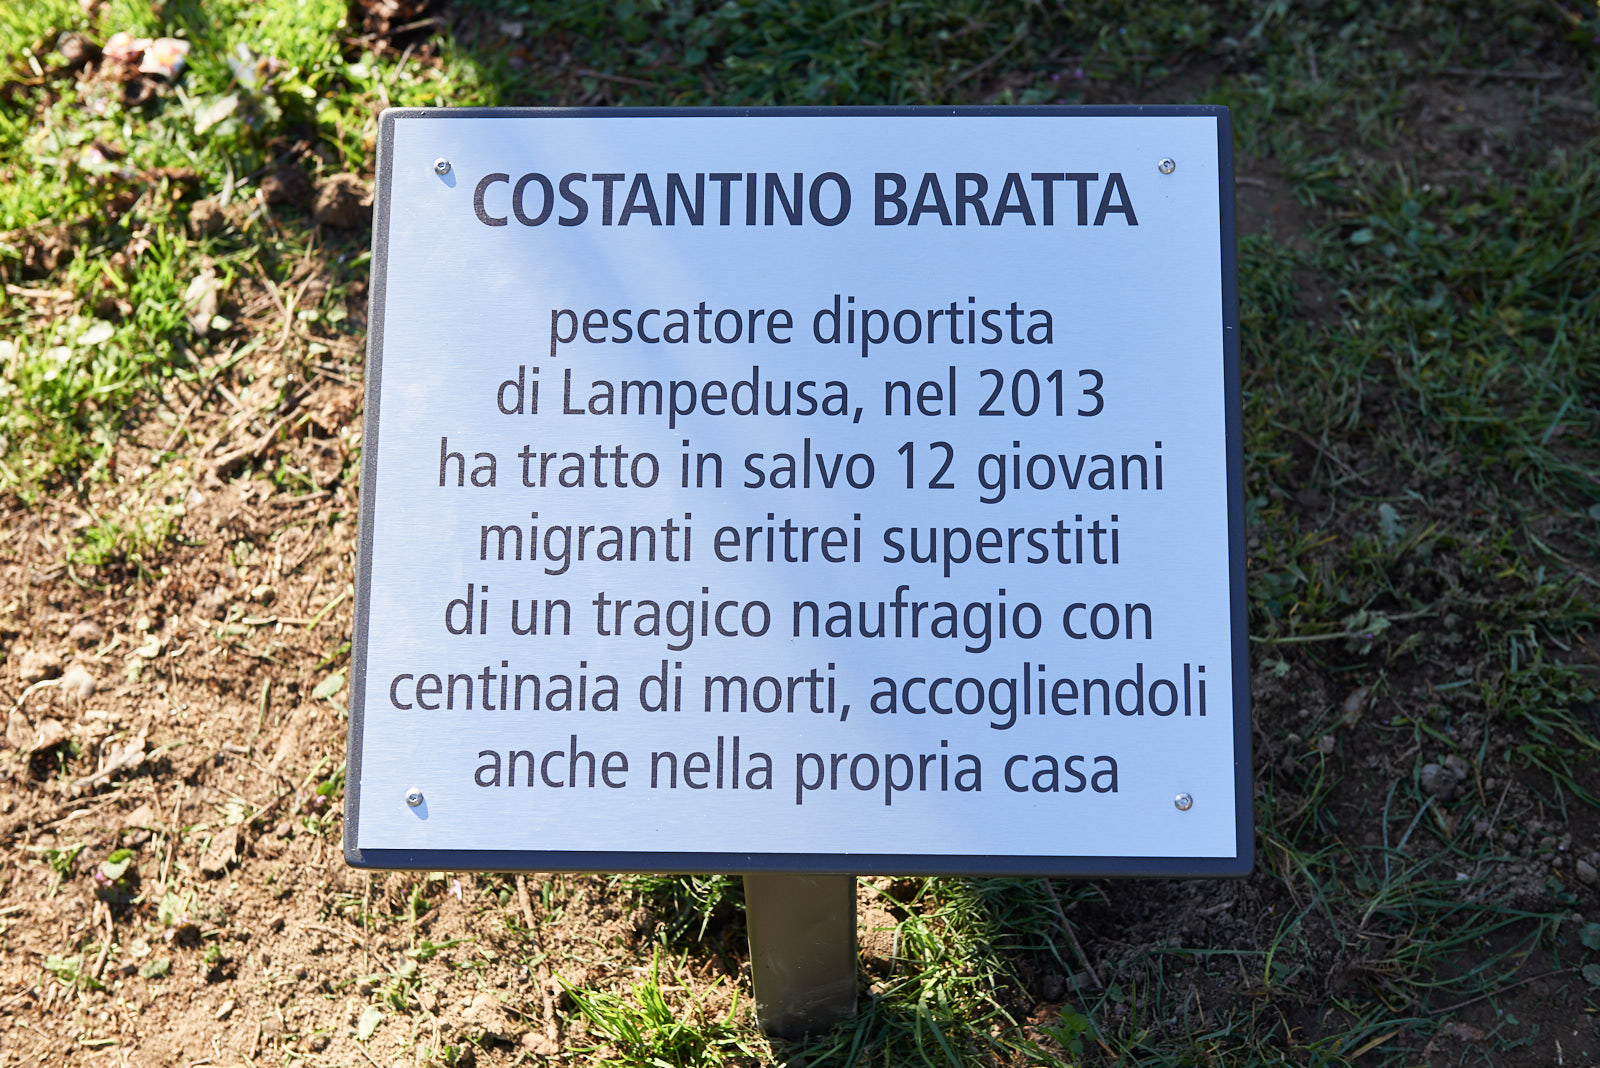 Plaque for Costantino Baratta